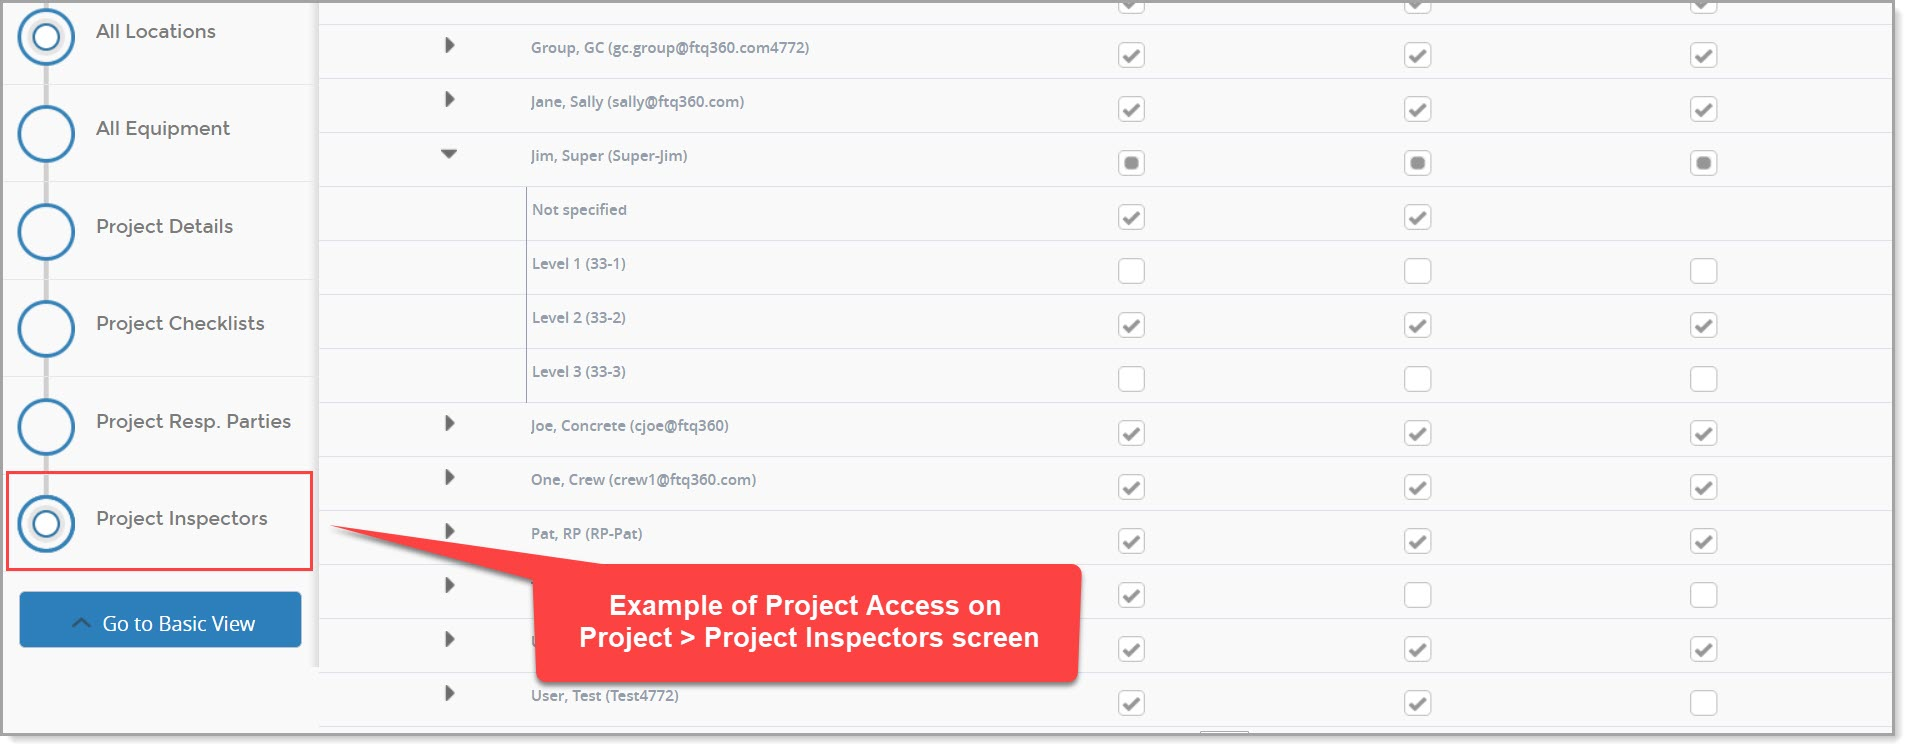 Project-Phase-Inspectors_2020-04-29_9-24-22.jpg